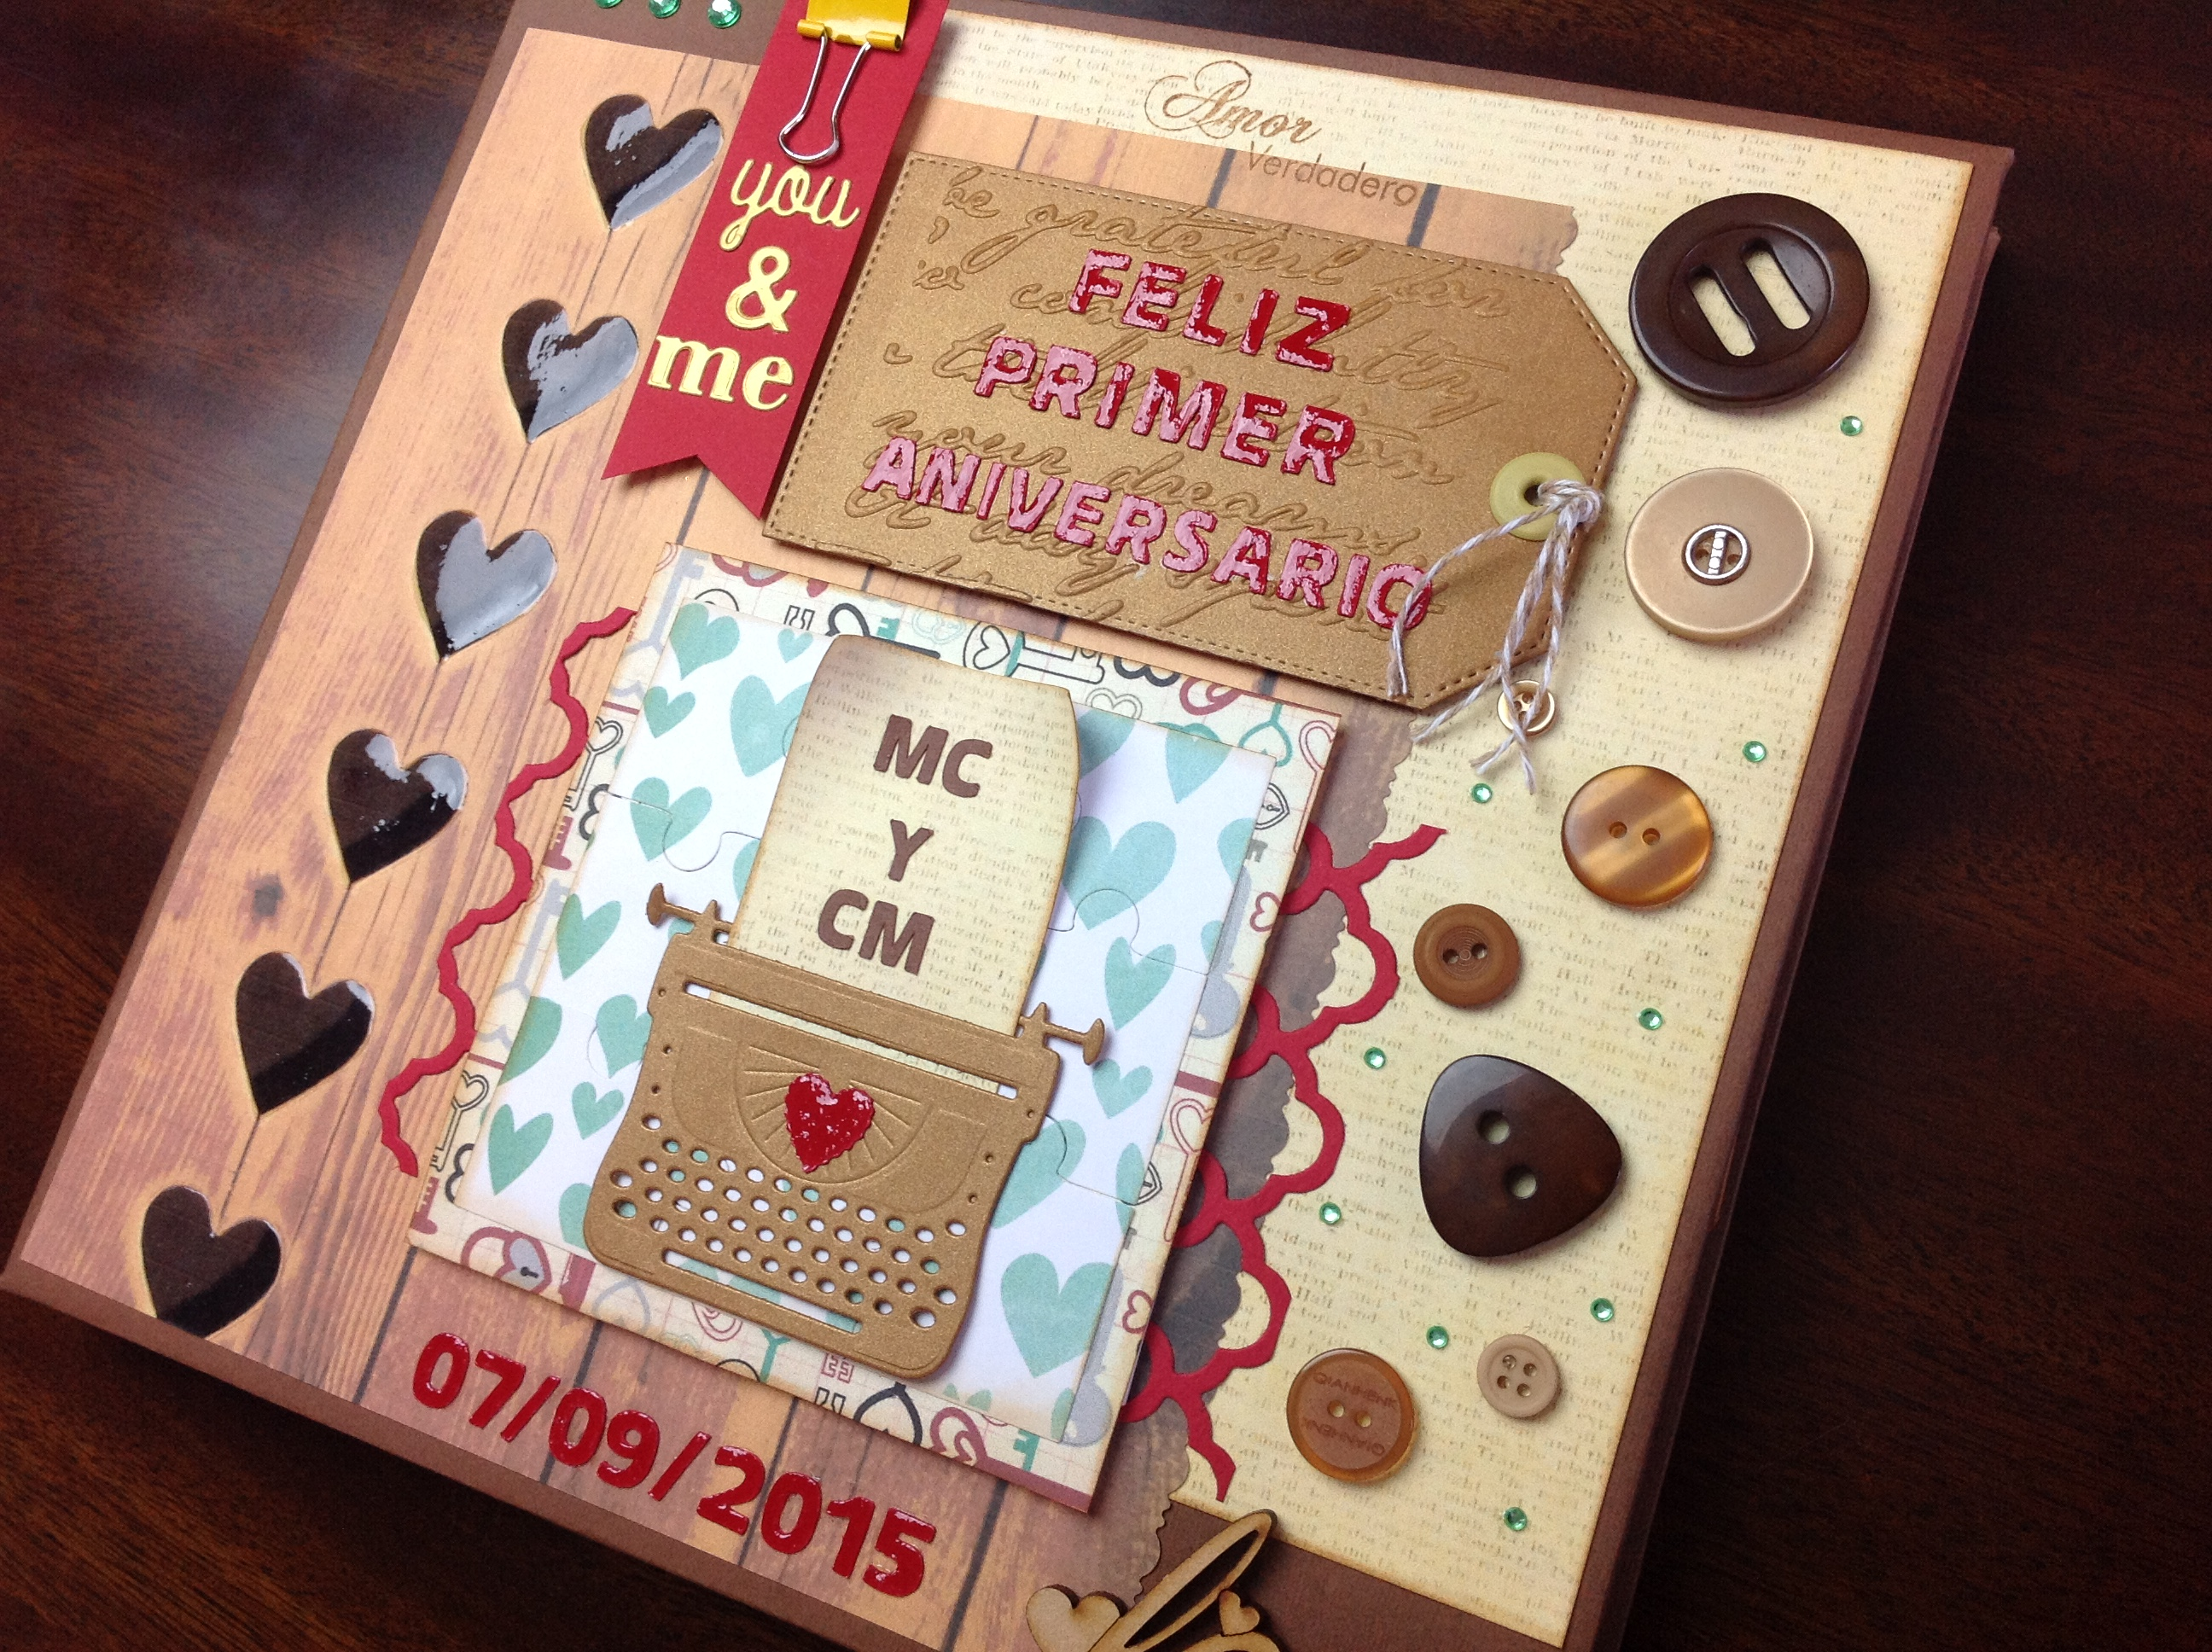 Album (Scrapbook) You and me